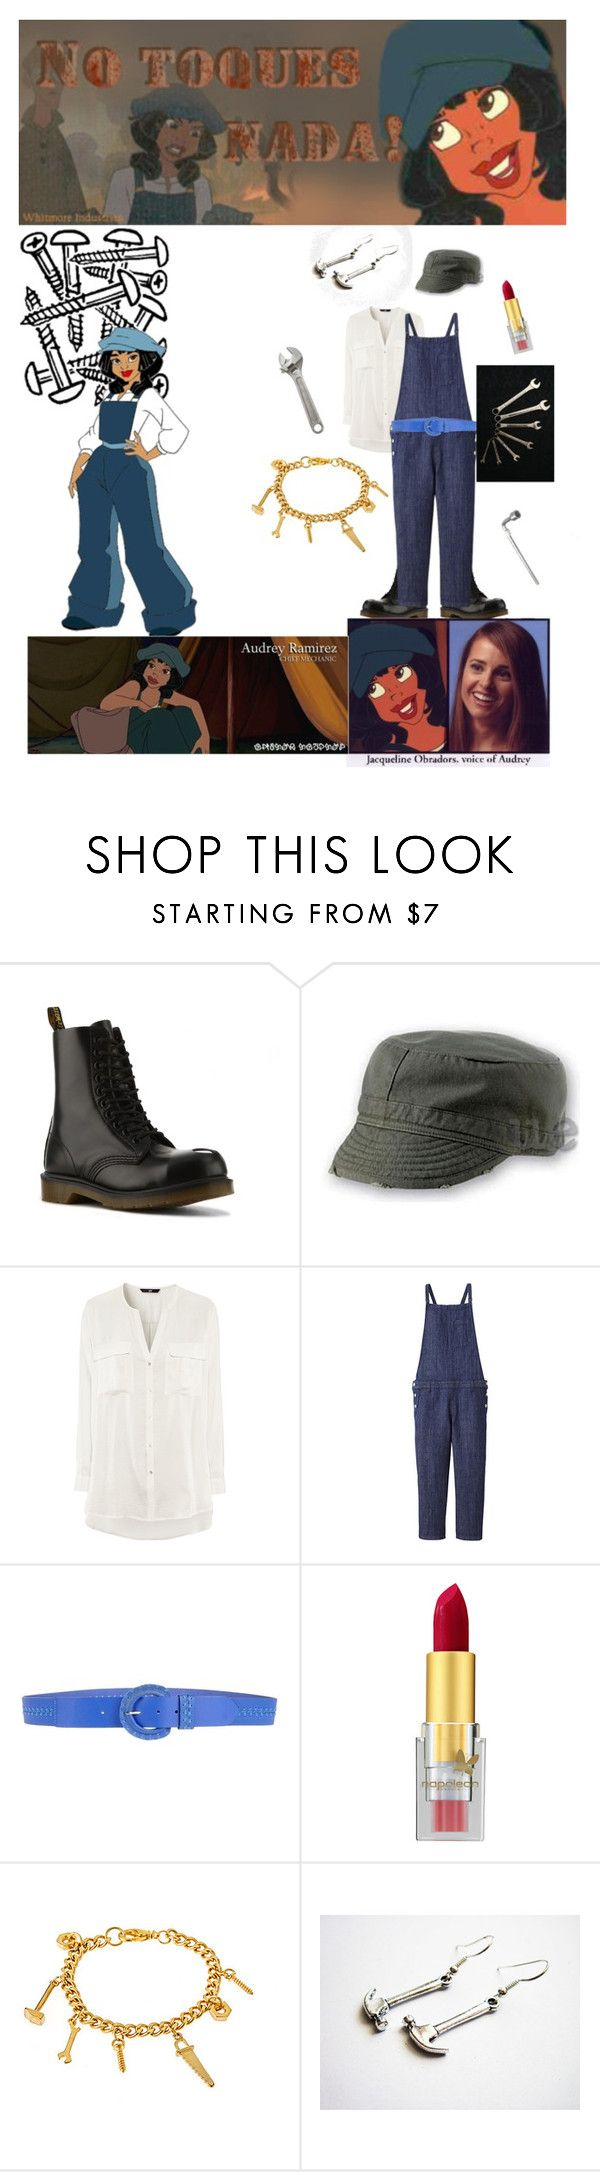 """""""Audrey, Chief Mechanic of the Ulysses"""" by dragonrescuer ❤ liked on Polyvore featuring Dr. Martens, Atlantis Caps, Atlantis, ...Lost, H&M, Uniqlo, BGN, Napoleon Perdis, Mercedes-Benz and Erica Anenberg"""